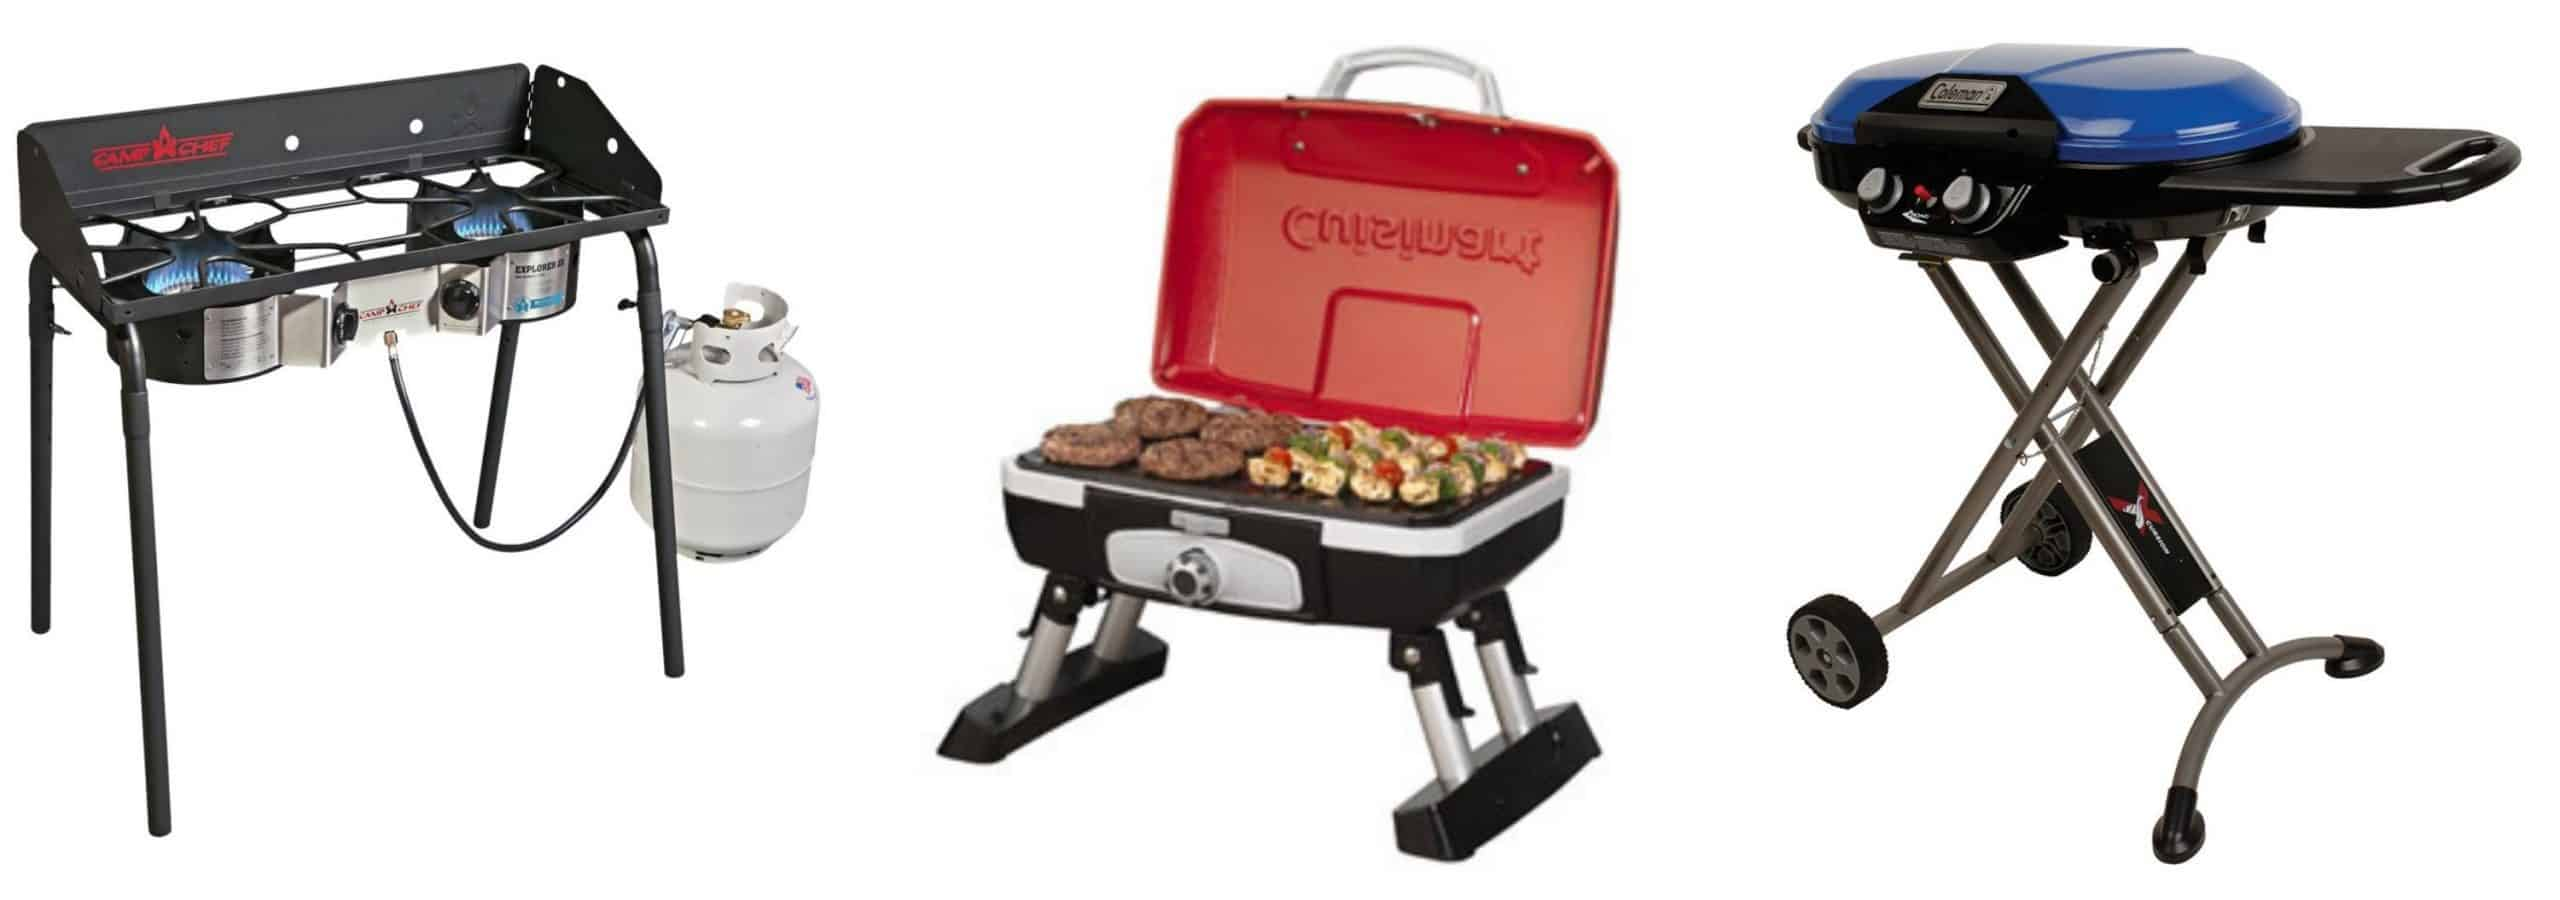 product testing for camping grill